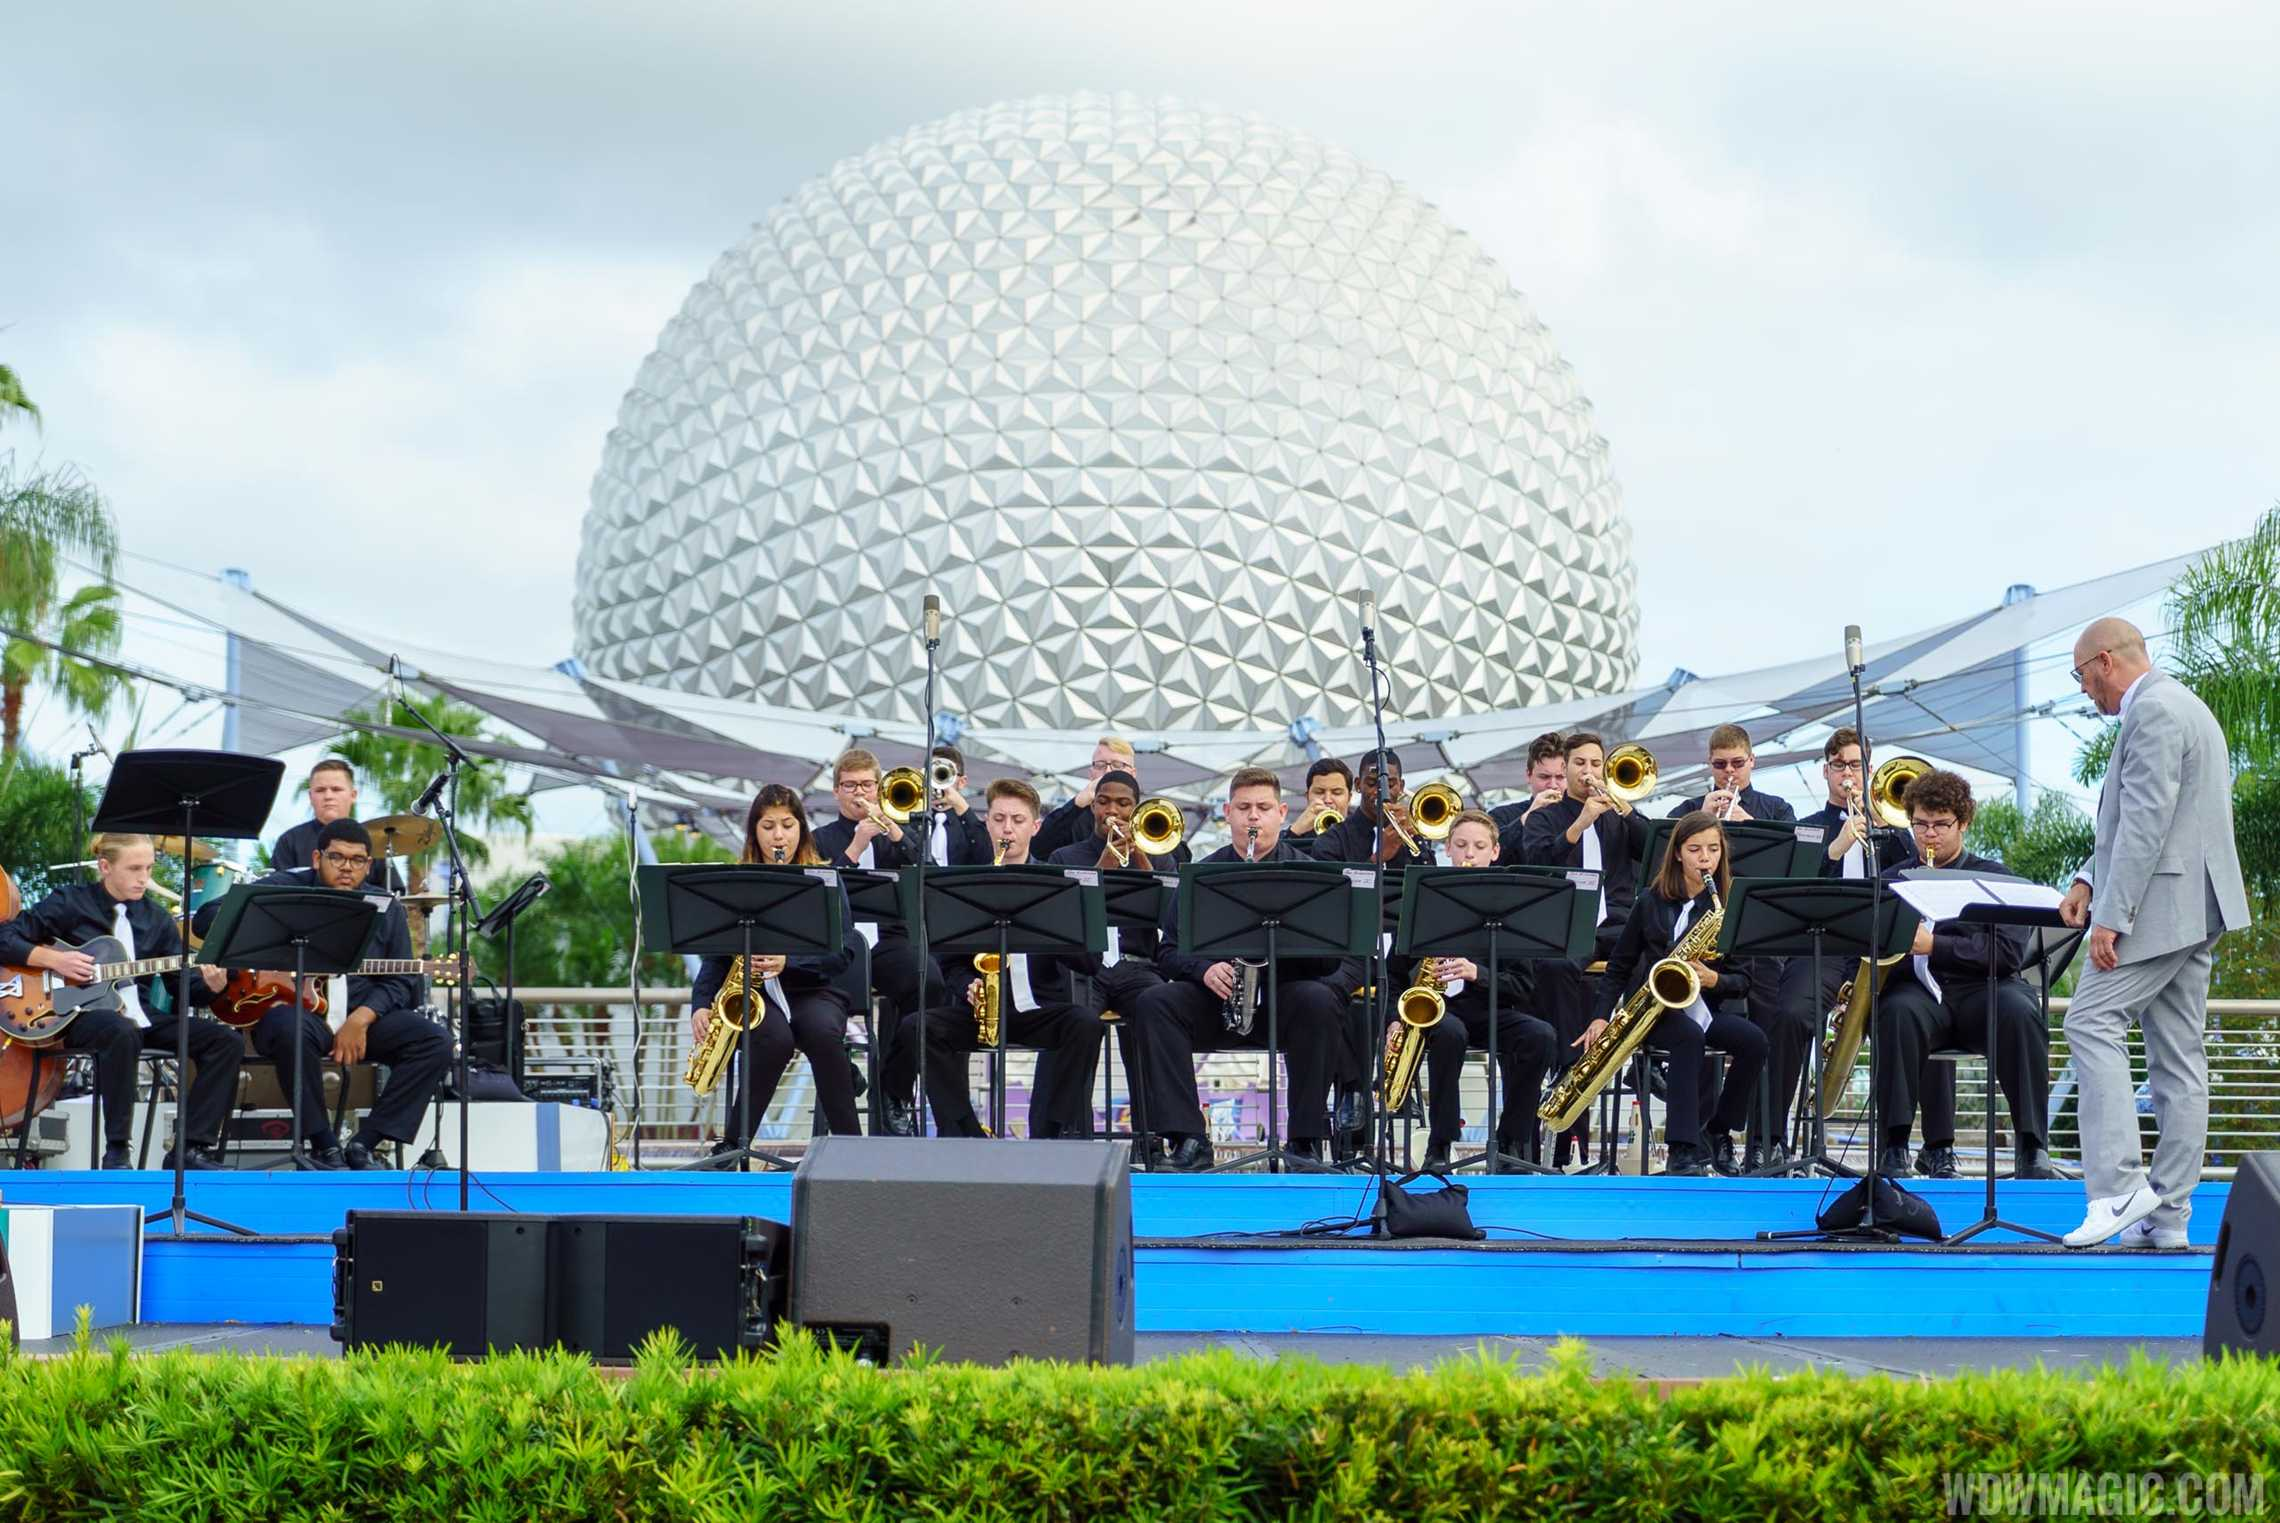 Epcot Festival of the Arts - Live band